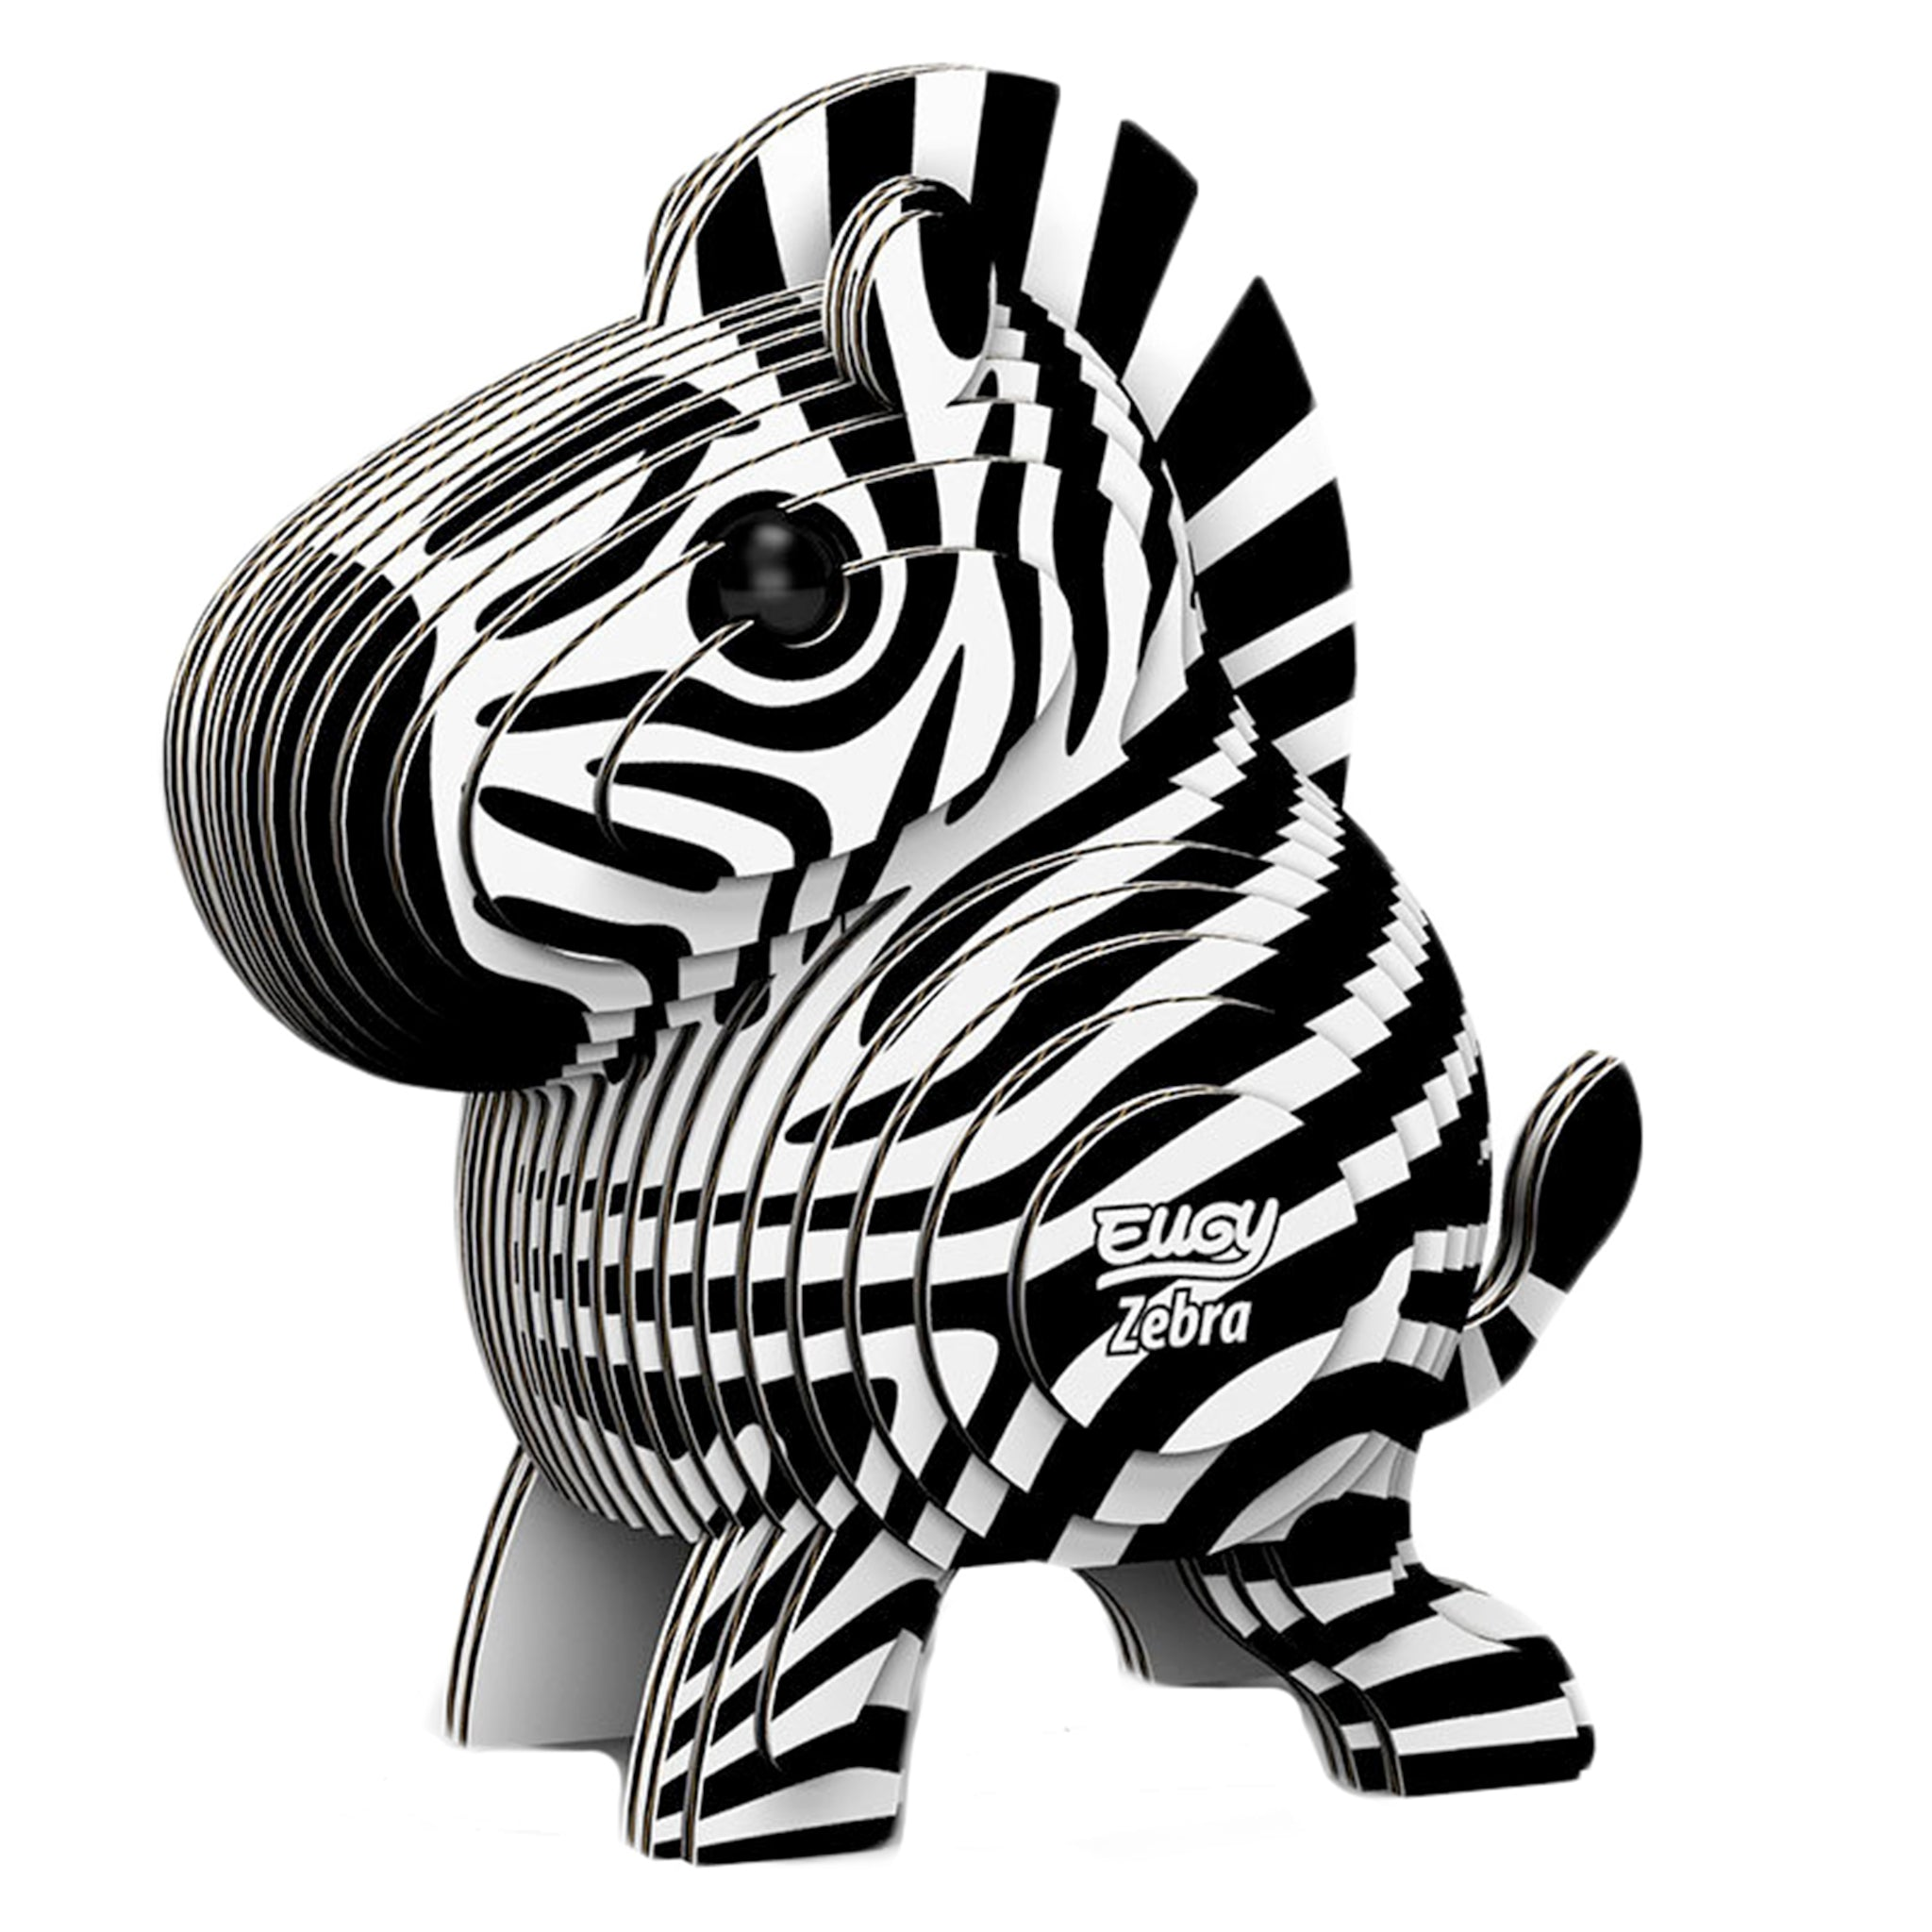 Eugy Dodoland Encourage your creativity and build this amazing zebra.  Environmentally friendly pack includes 6 to 7 numbered cards ready to assemble, non-toxic glue and uses eco-friendly inks.  Conforms to international safety standards (EN71-1,2,3 and CPSIA).